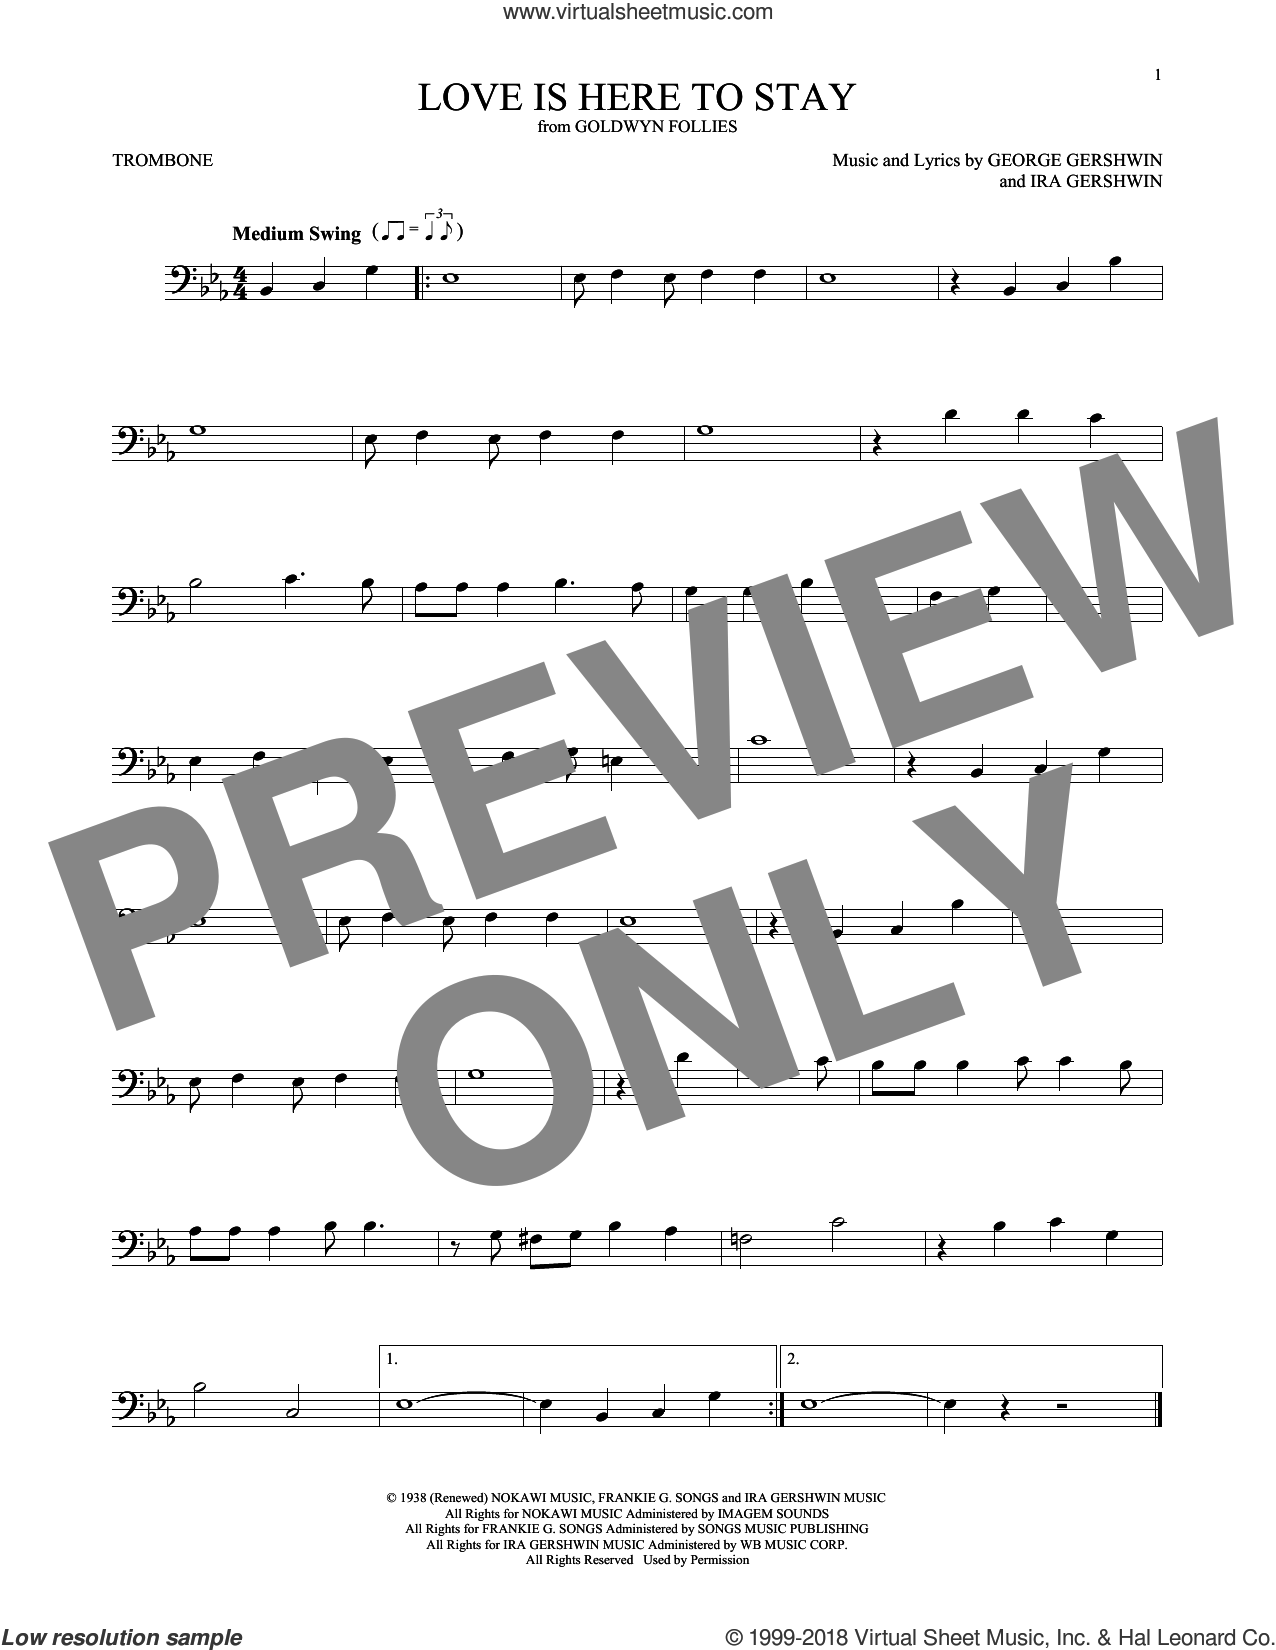 Love Is Here To Stay sheet music for trombone solo by George Gershwin and Ira Gershwin, intermediate skill level